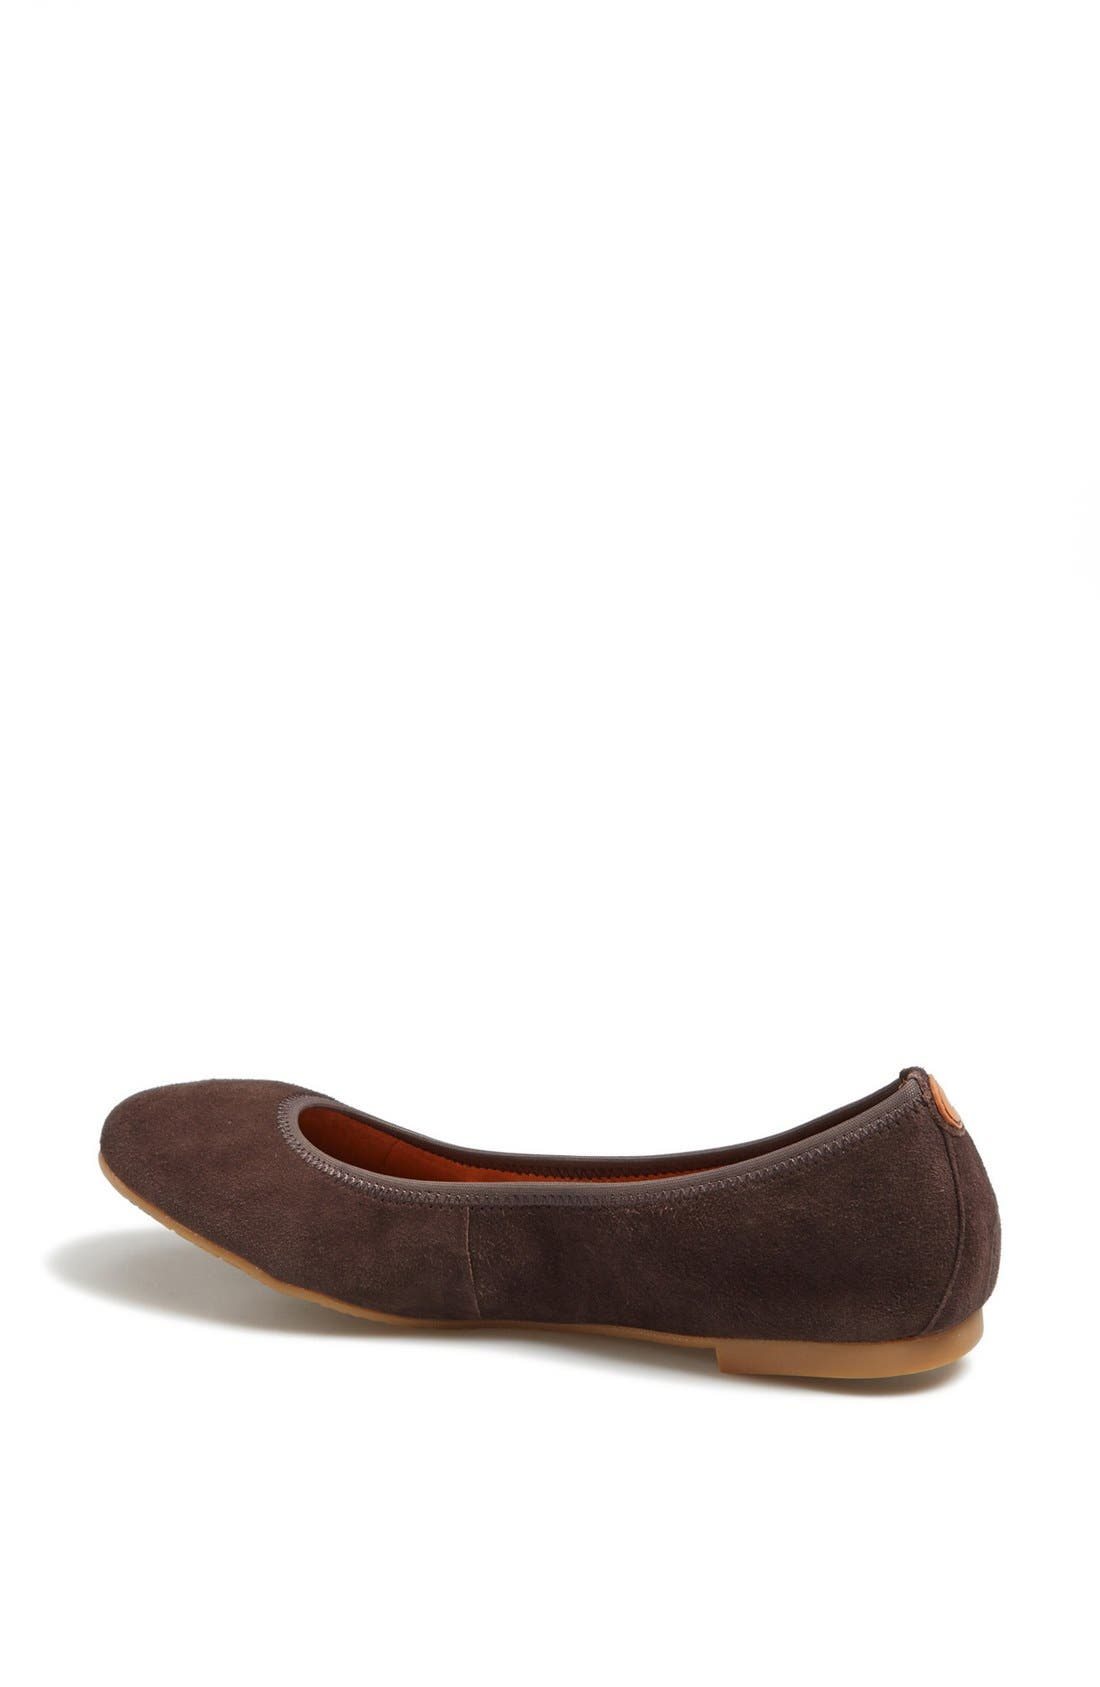 Alternate Image 2  - Juil 'The Flat' Earthing Suede Ballet Flat